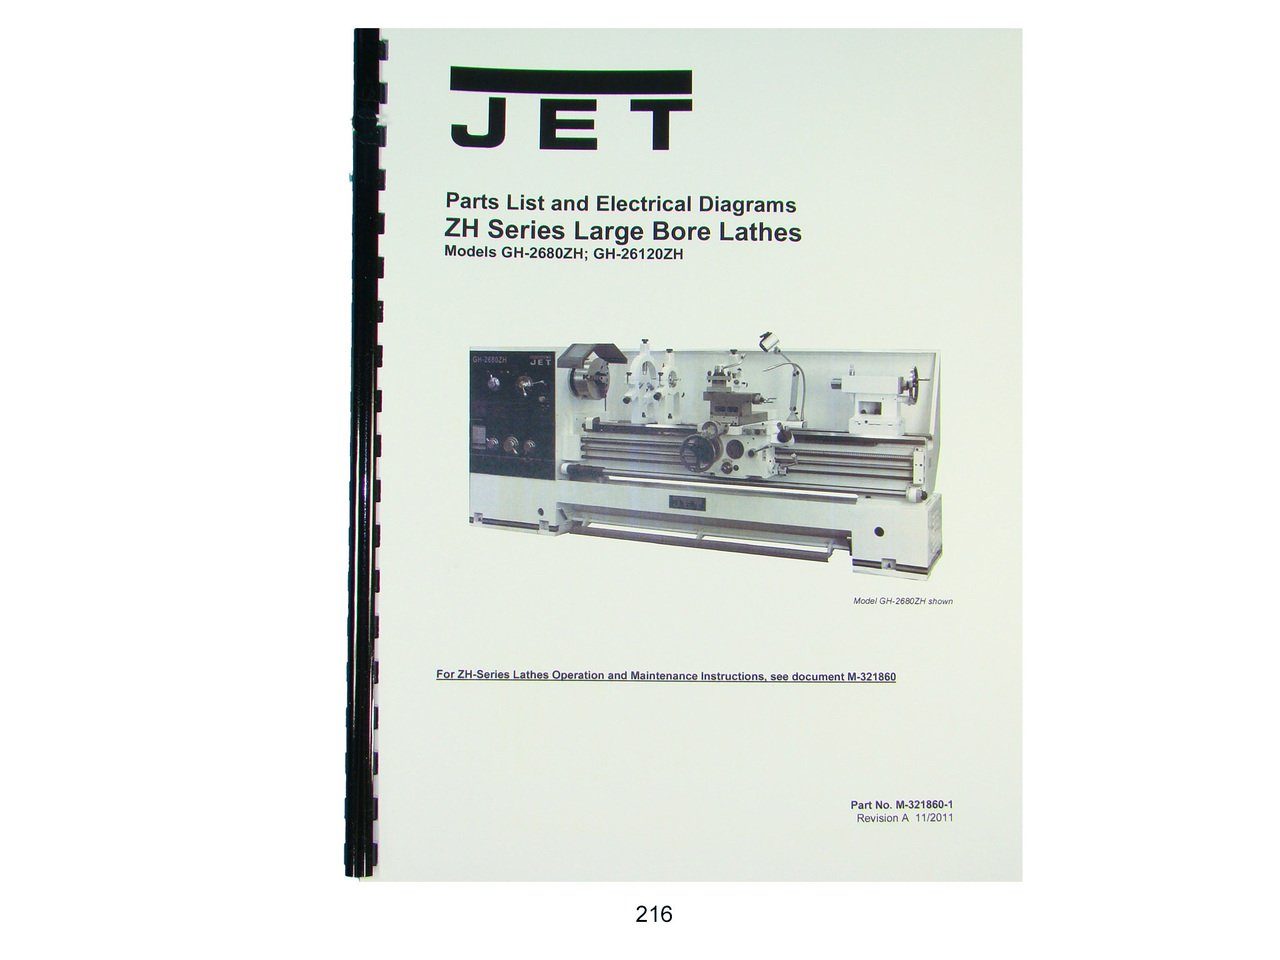 Jet Gh 2680zh 26120zh Lathe Parts List Electrical Diagram Wiring Manual Books